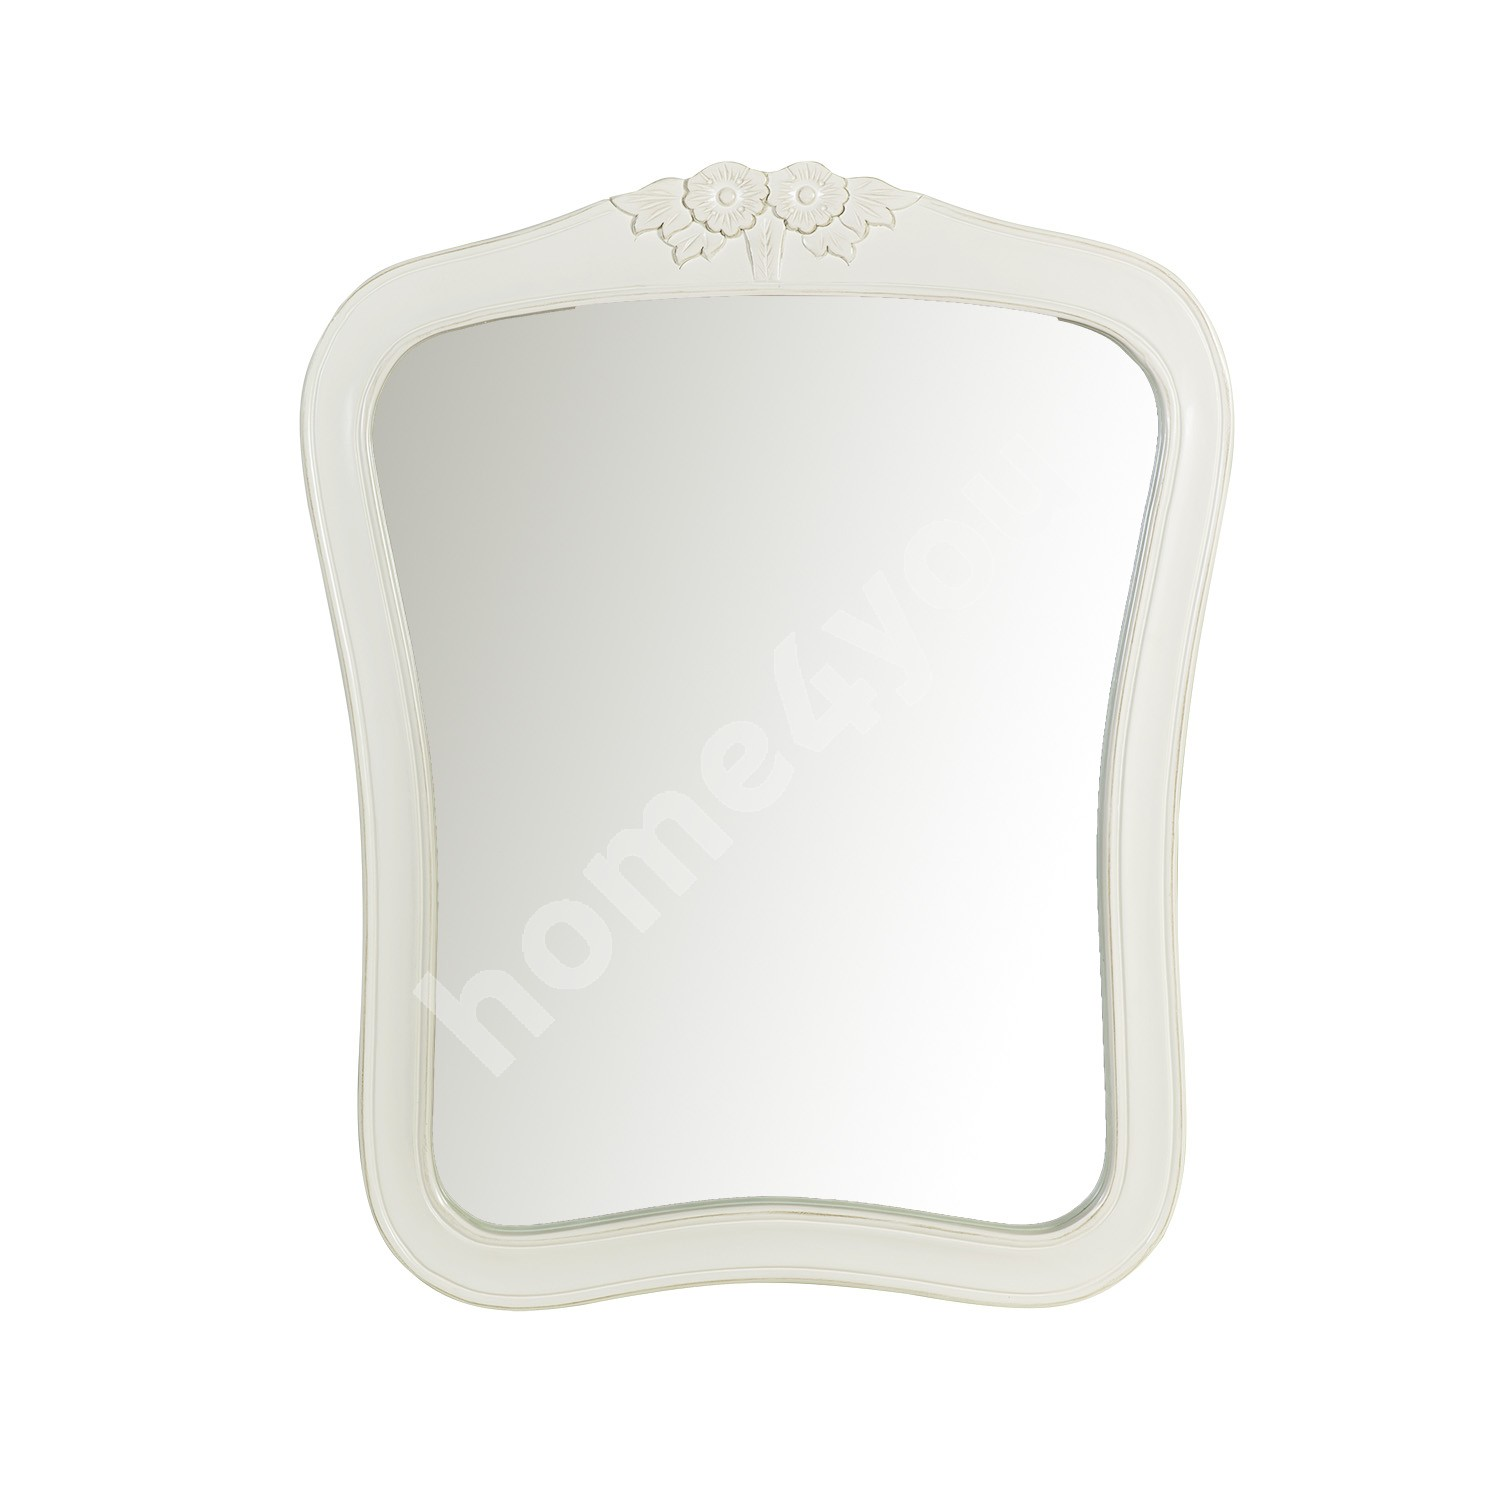 Mirror ELIZABETH 70x3xH86cm, color: antique white